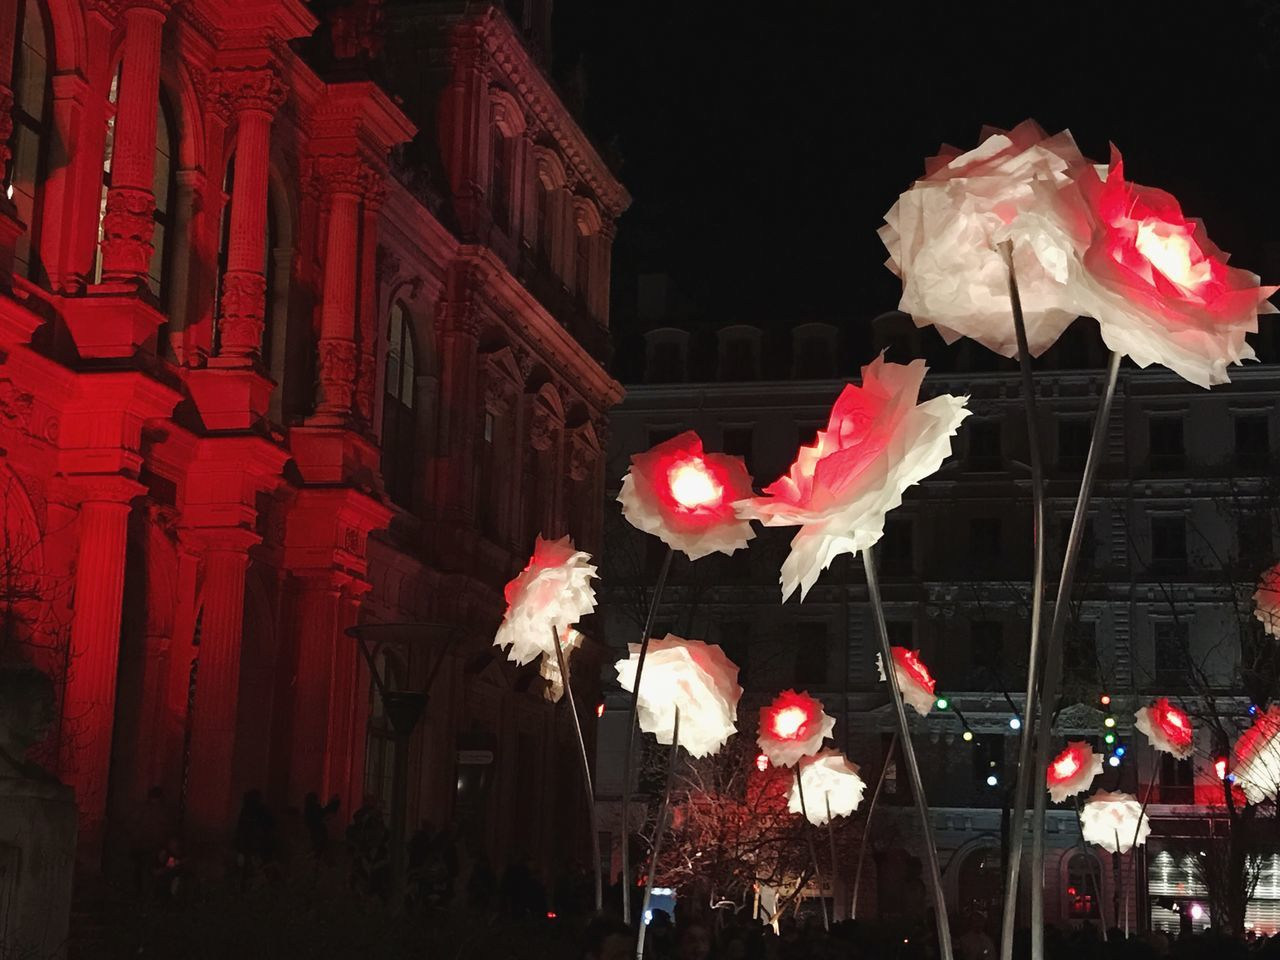 The Festival of Lights in Lyon Red Built Structure Flower No People Architecture Building Exterior Outdoors Parade Night France Lyon Fete Des Lumieres